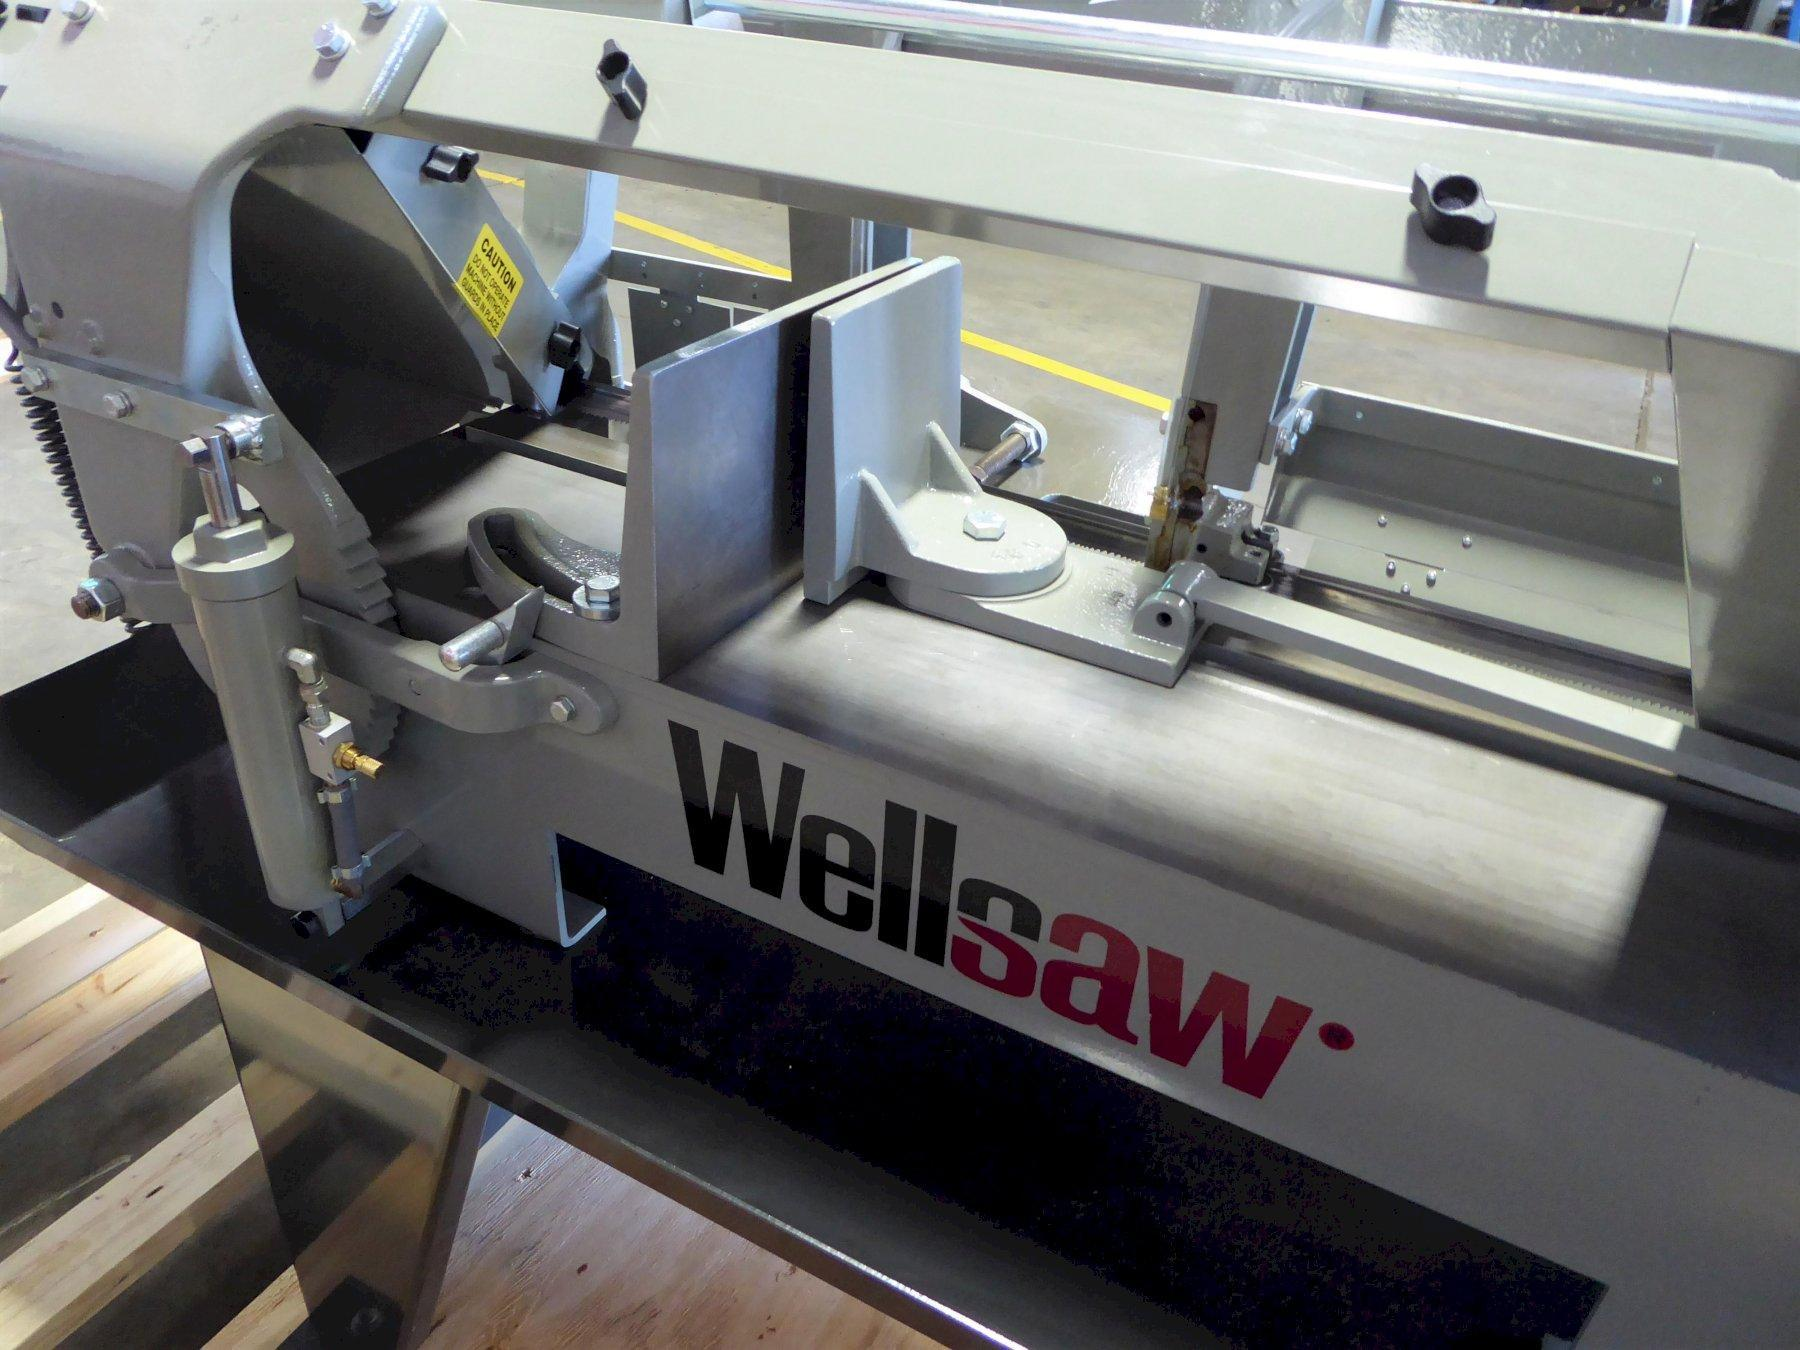 """10"""" x 16"""" Wellsaw Horizontal Band Saw No. 1016, 50-275 FPM, 1"""" Blade, Wet, 2 HP, New, In Stock"""